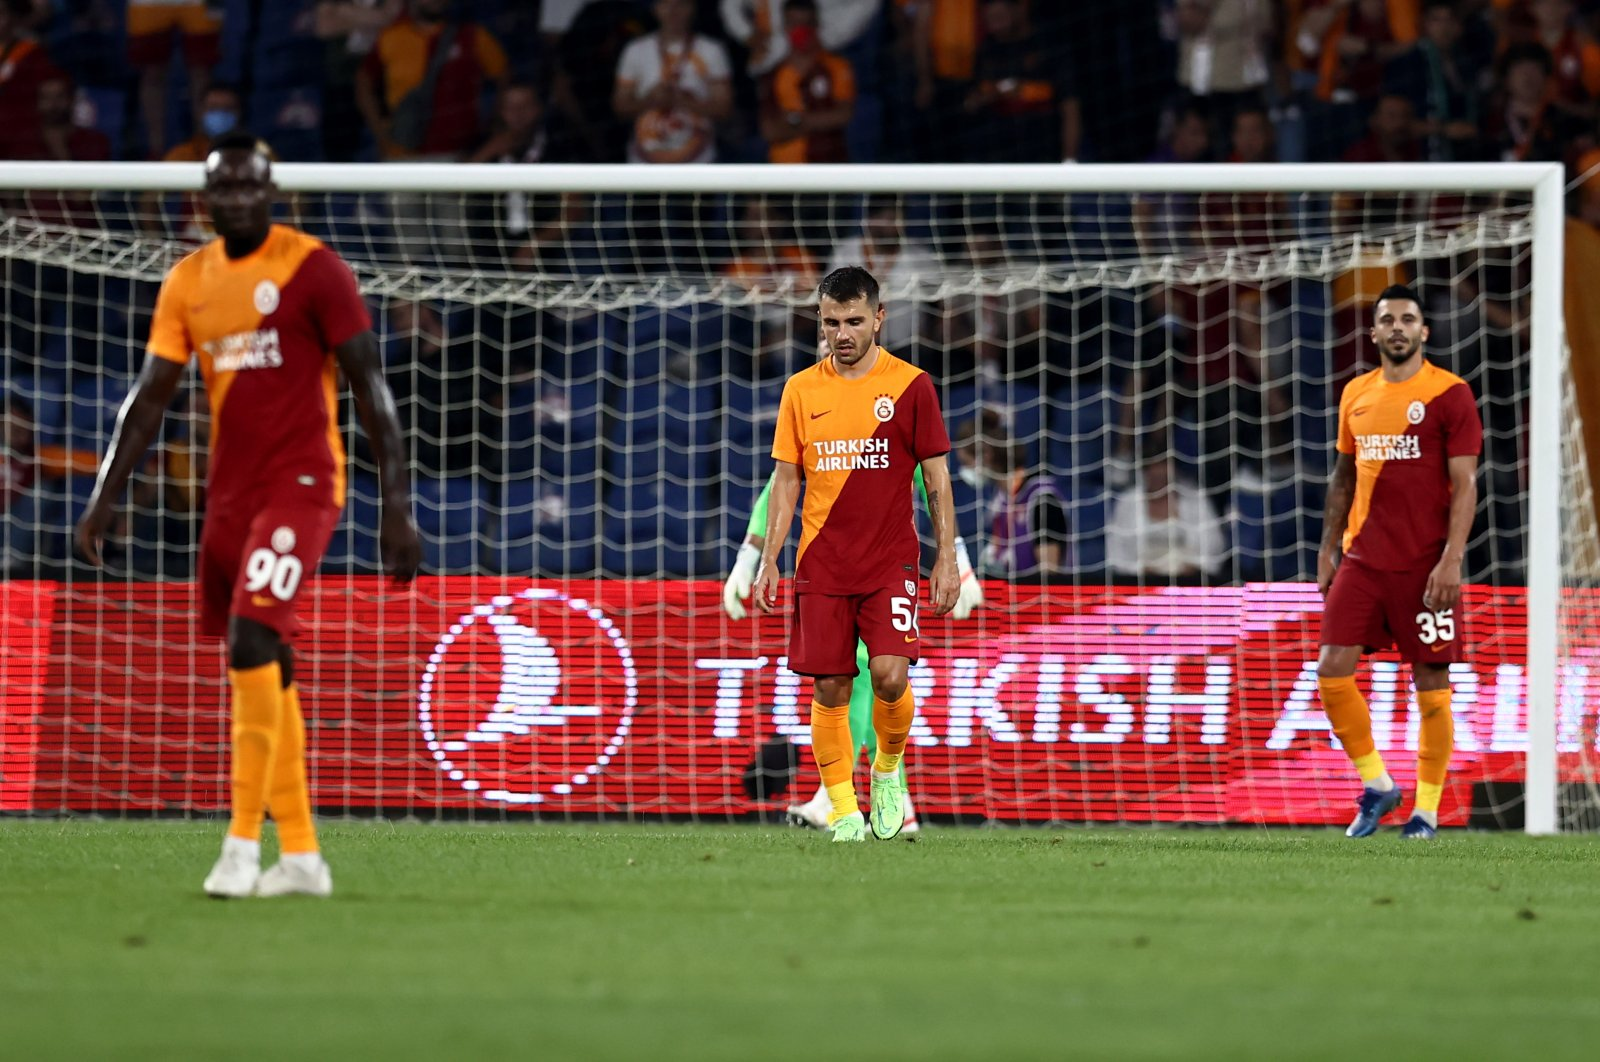 Galatasaray players are seen after the defeat against PSV Eindhoven at the Fatih Terim Stadium, Istanbul, Turkey, July 28, 2021. (AA Photo)